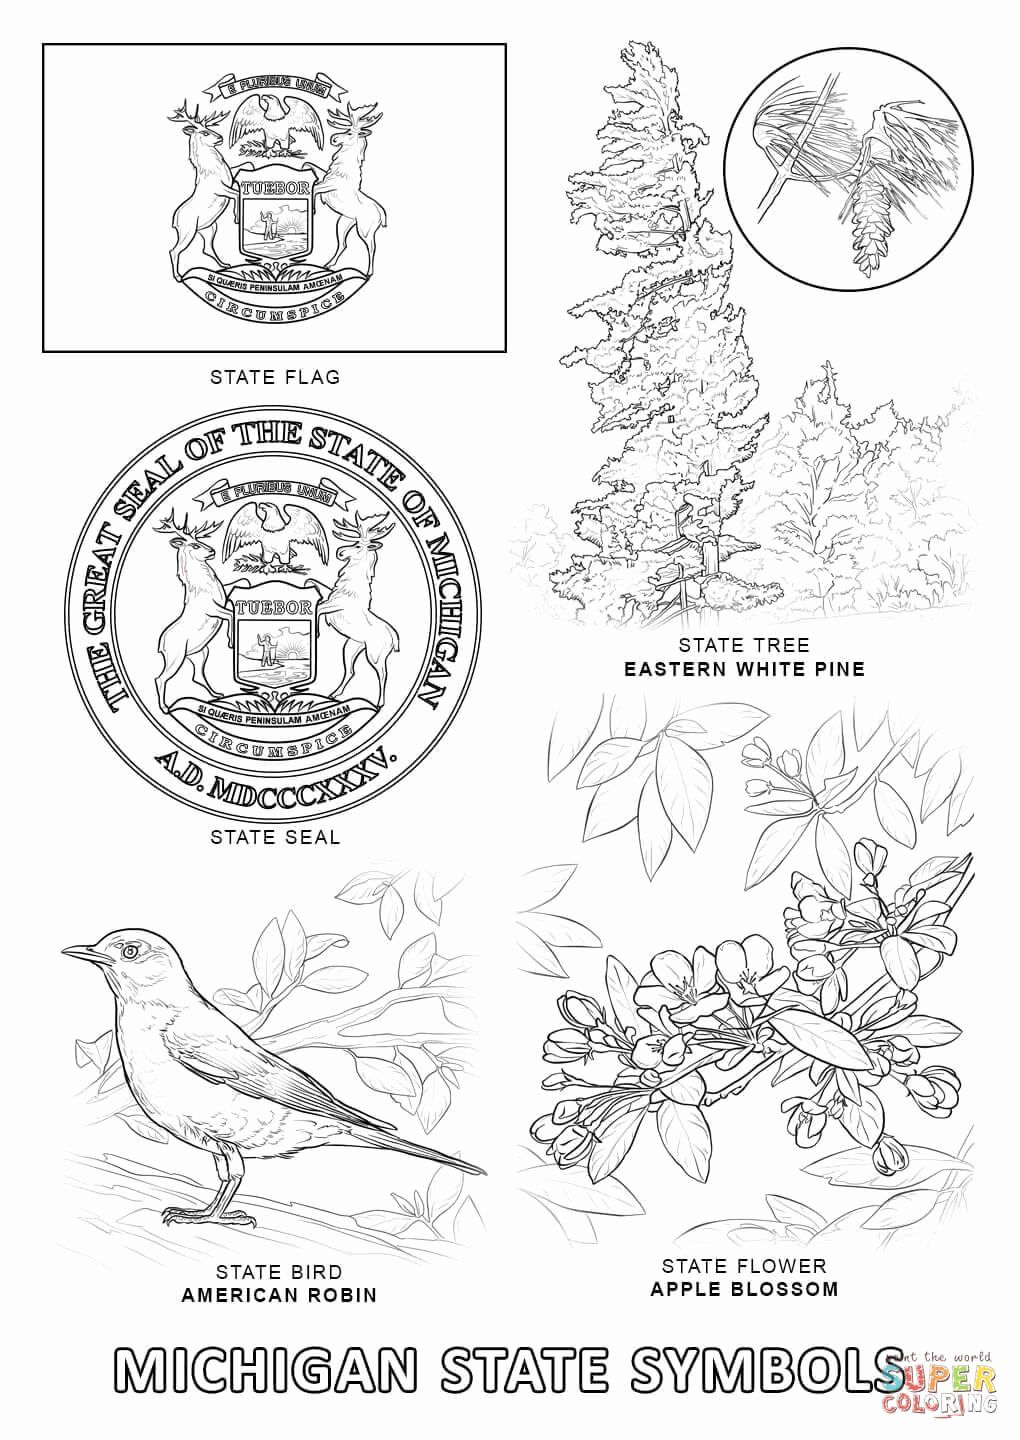 Michigan Bird Coloring Pages For Kids Flag Coloring Pages State Symbols Texas Symbols